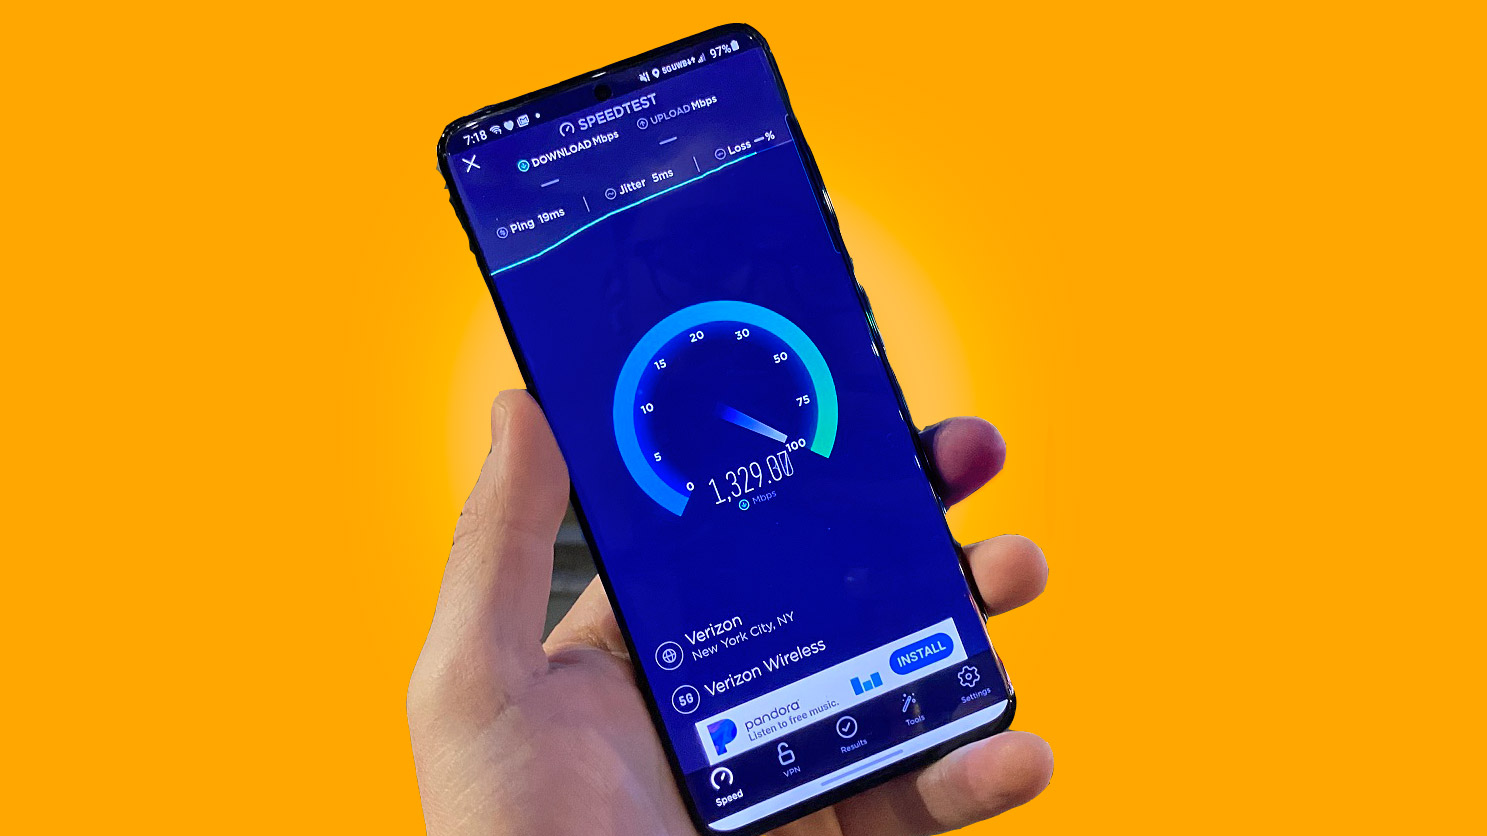 Best New Cell Phones 2021 Best 5G phones 2020: the top handsets with next gen connectivity